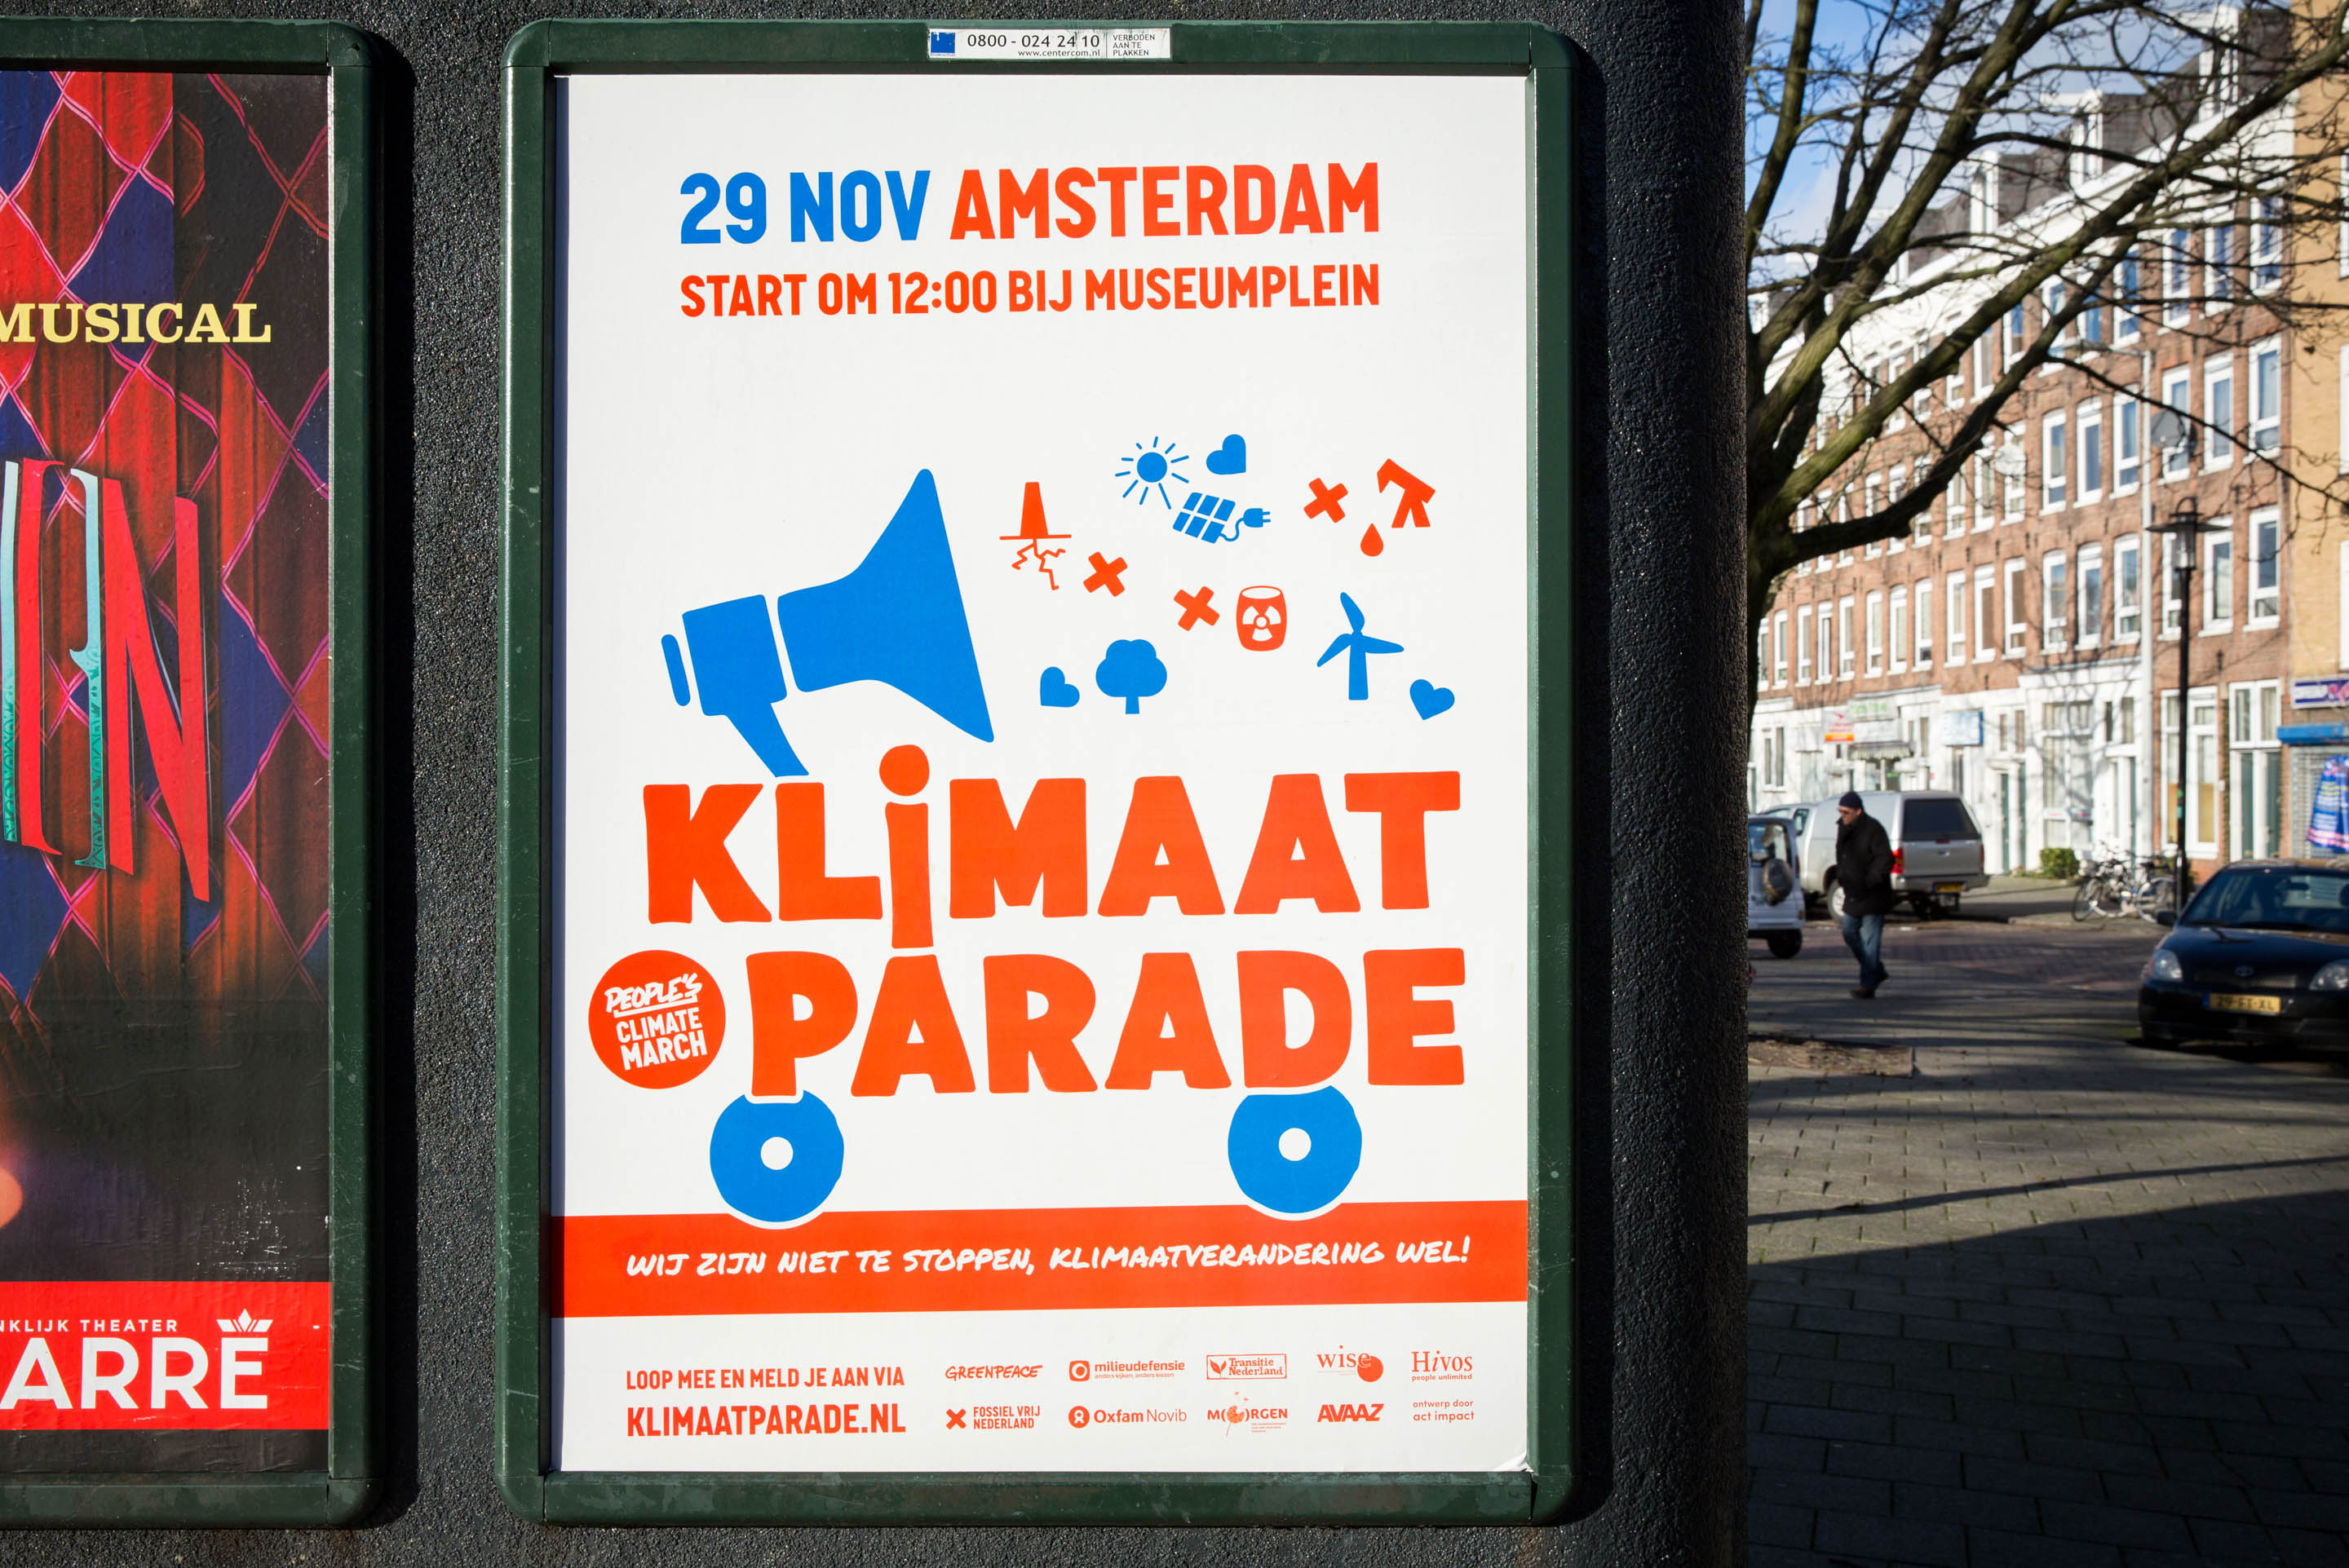 013-Klimaatparade-Peoples-Climate-March-Graphic-Alert-Act-Impact-09